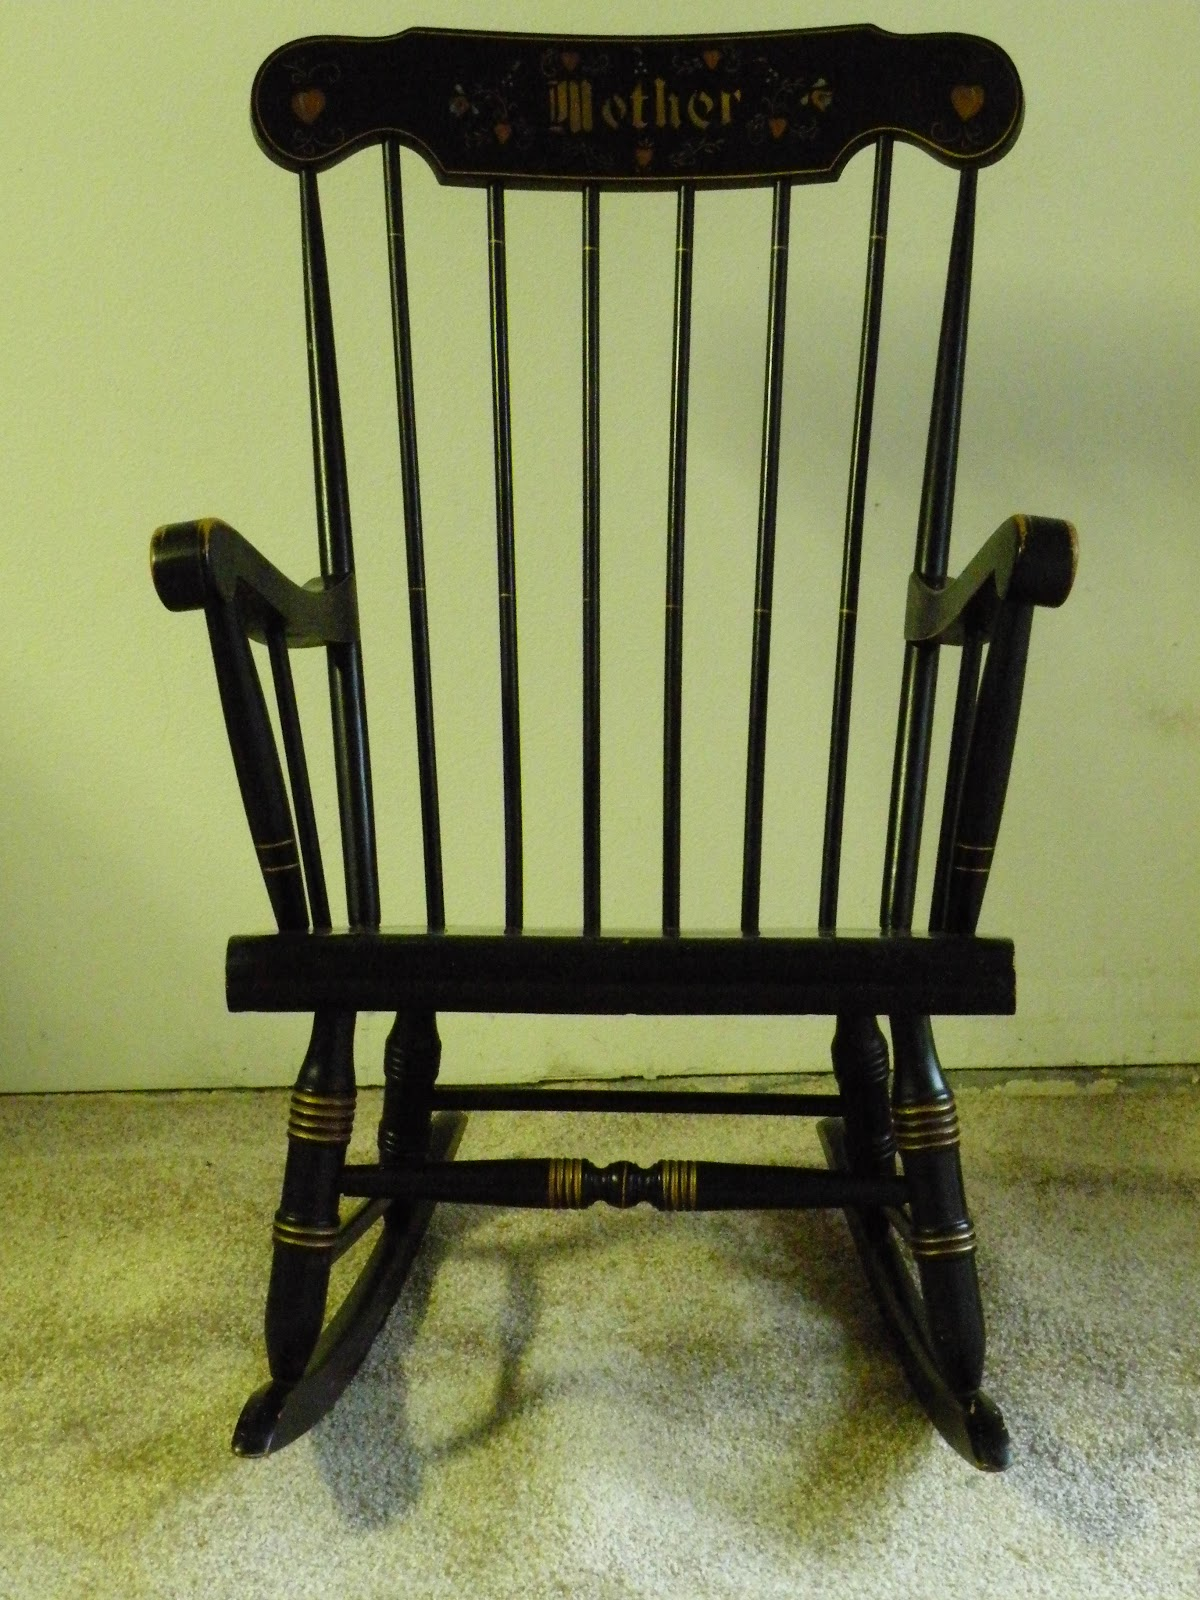 - Jim's Vintage: An Almost Antique Black Rocking Chair